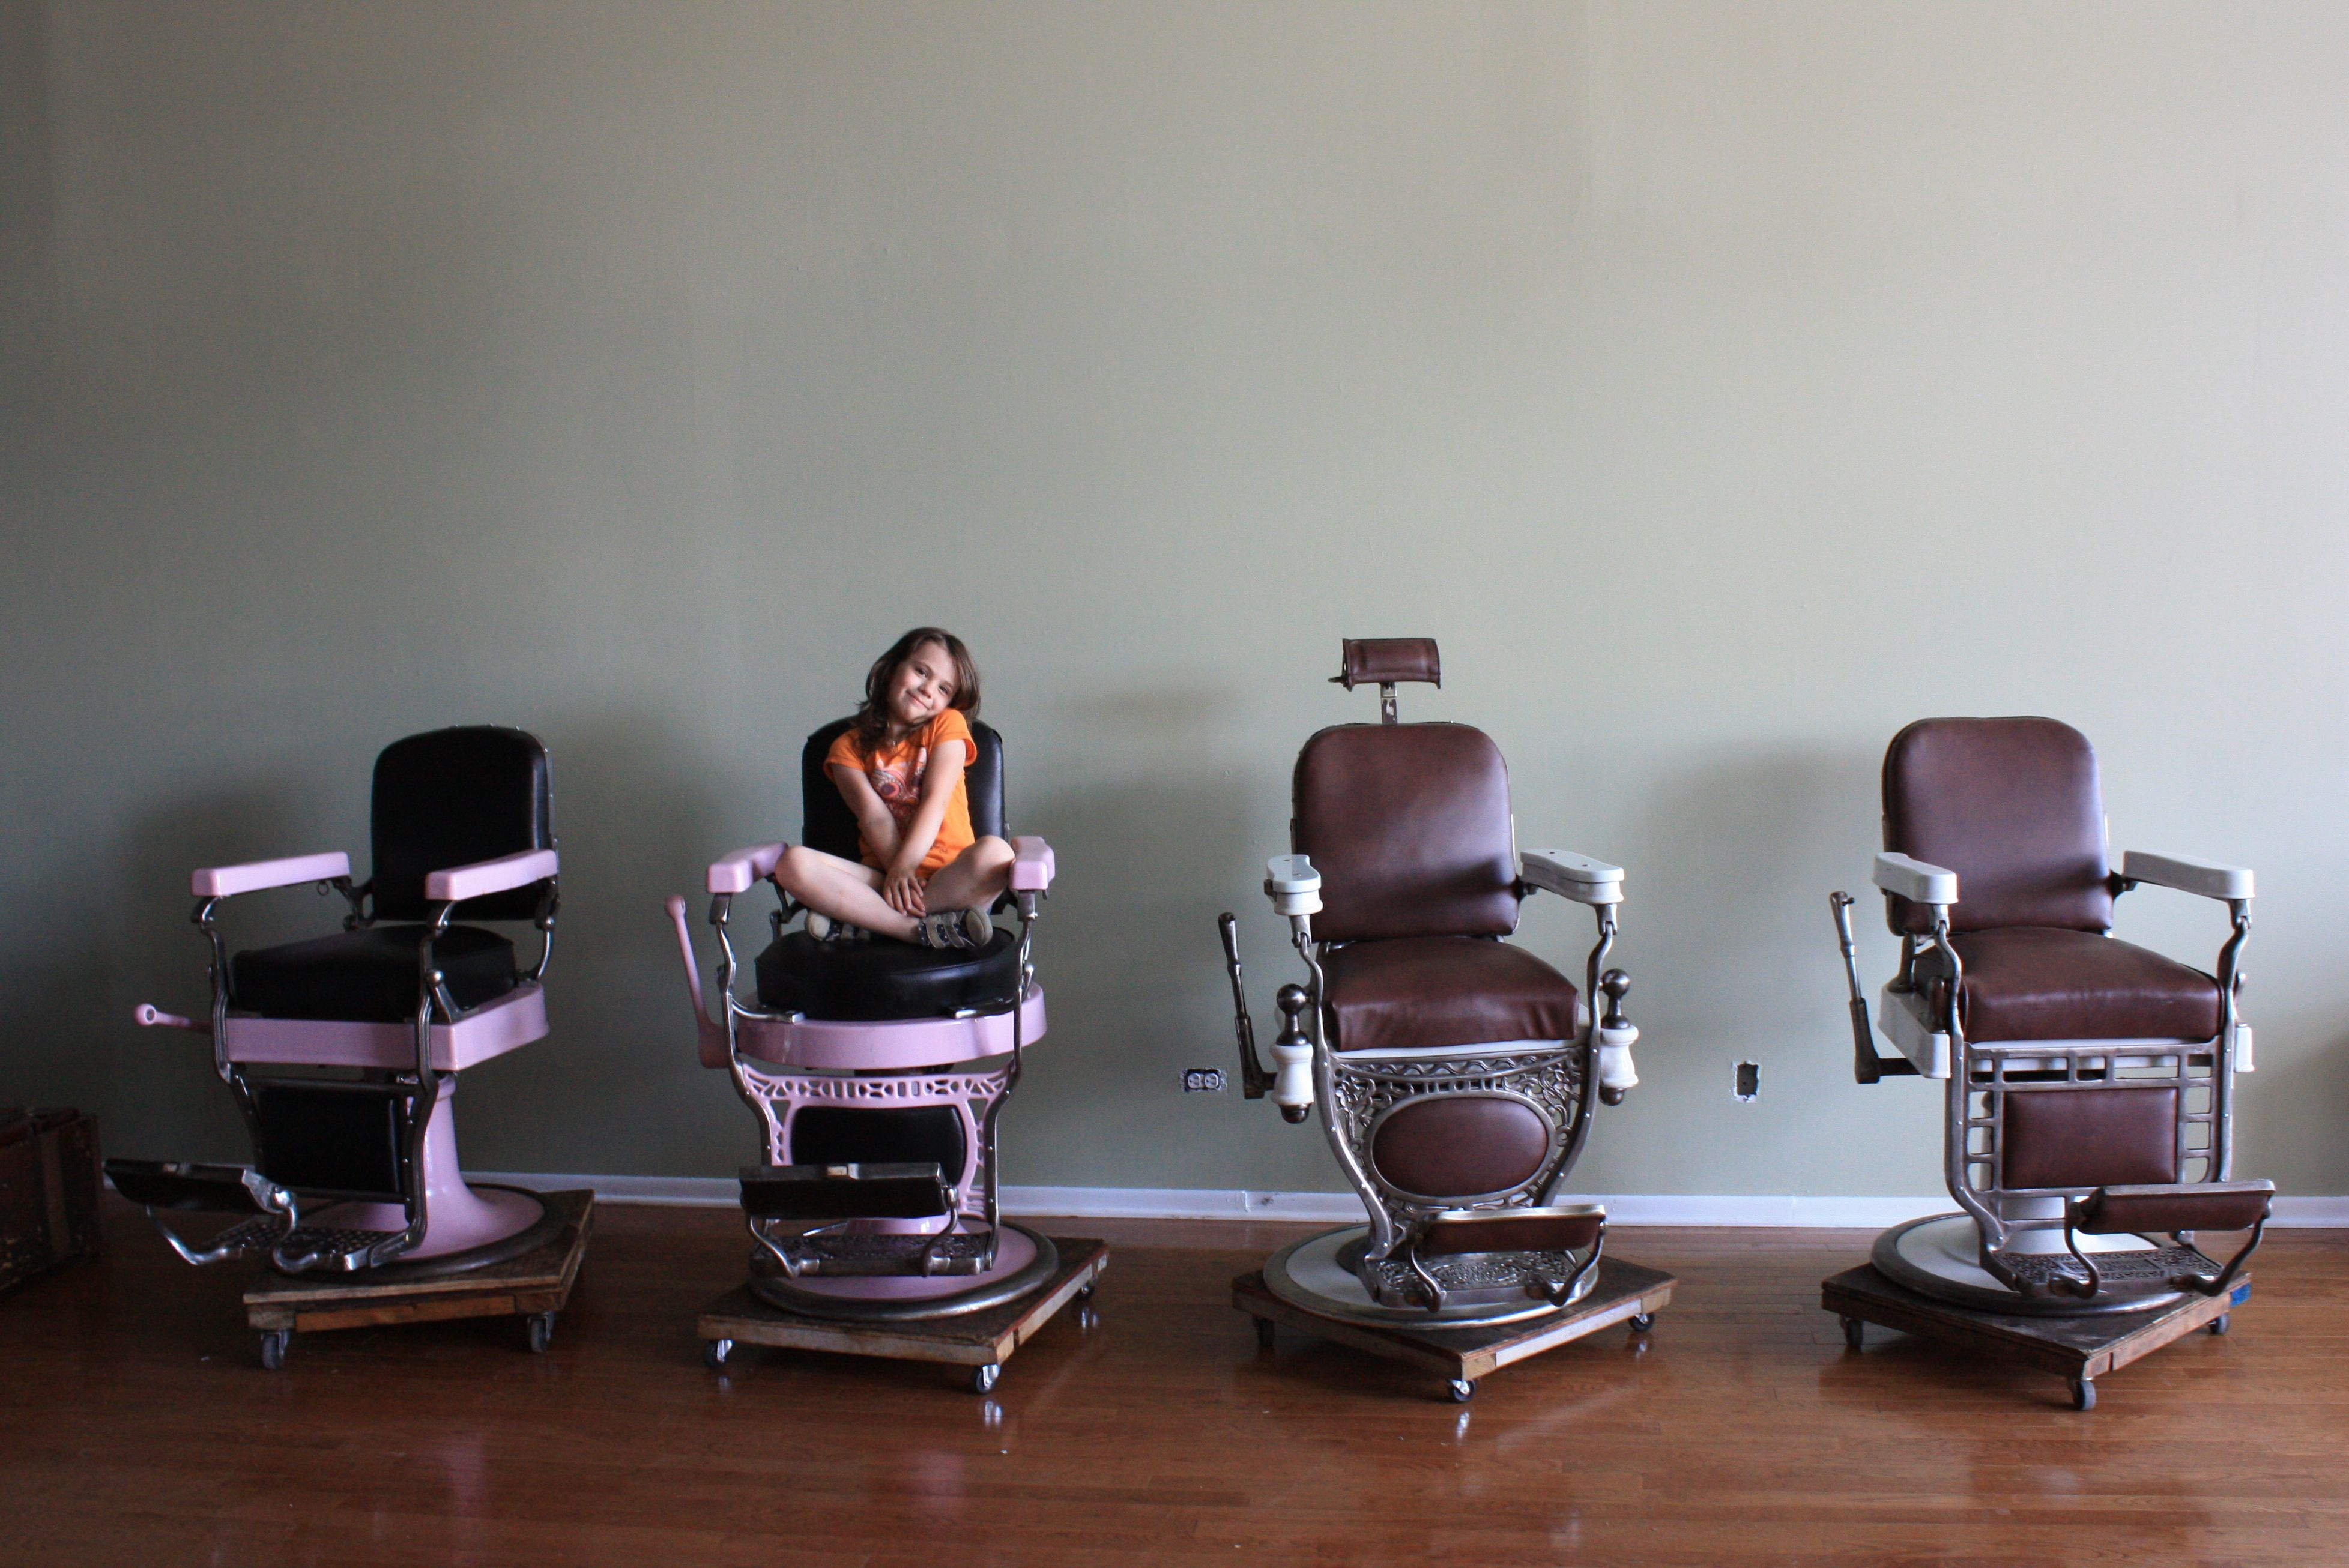 vintage barber chairs against grey wall